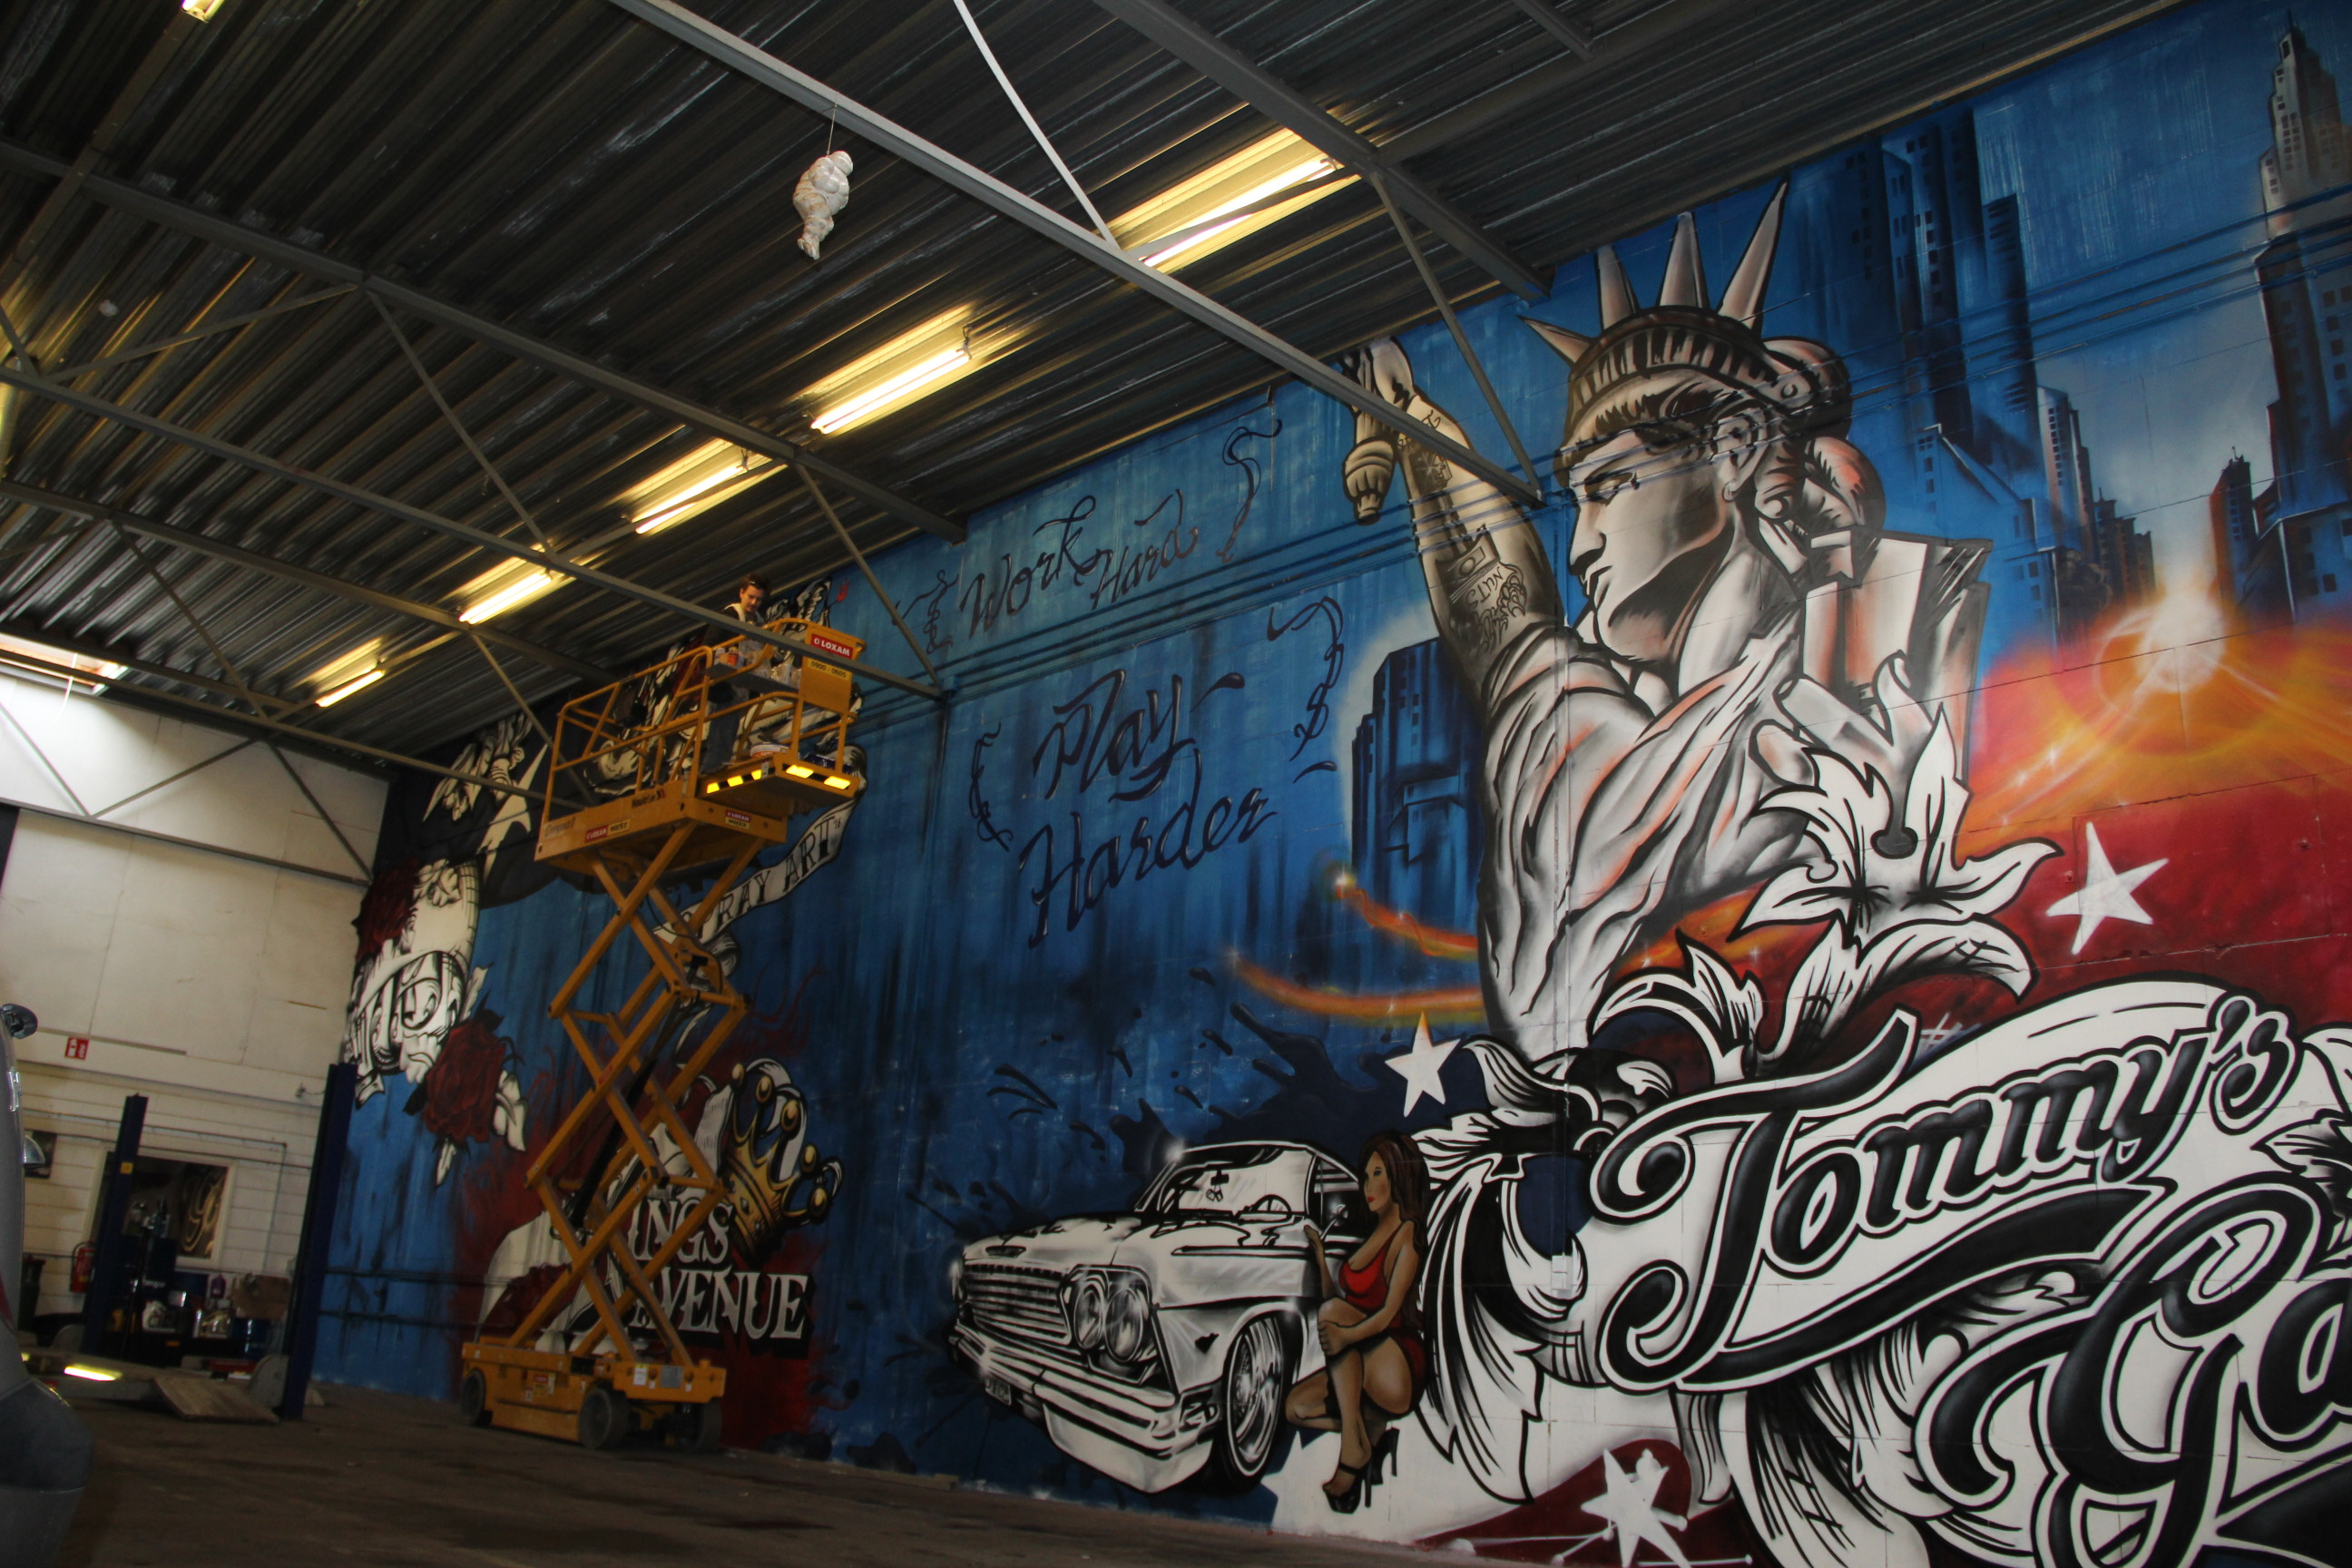 Tommy's Garage | 30 x 8 mt graffiti mural